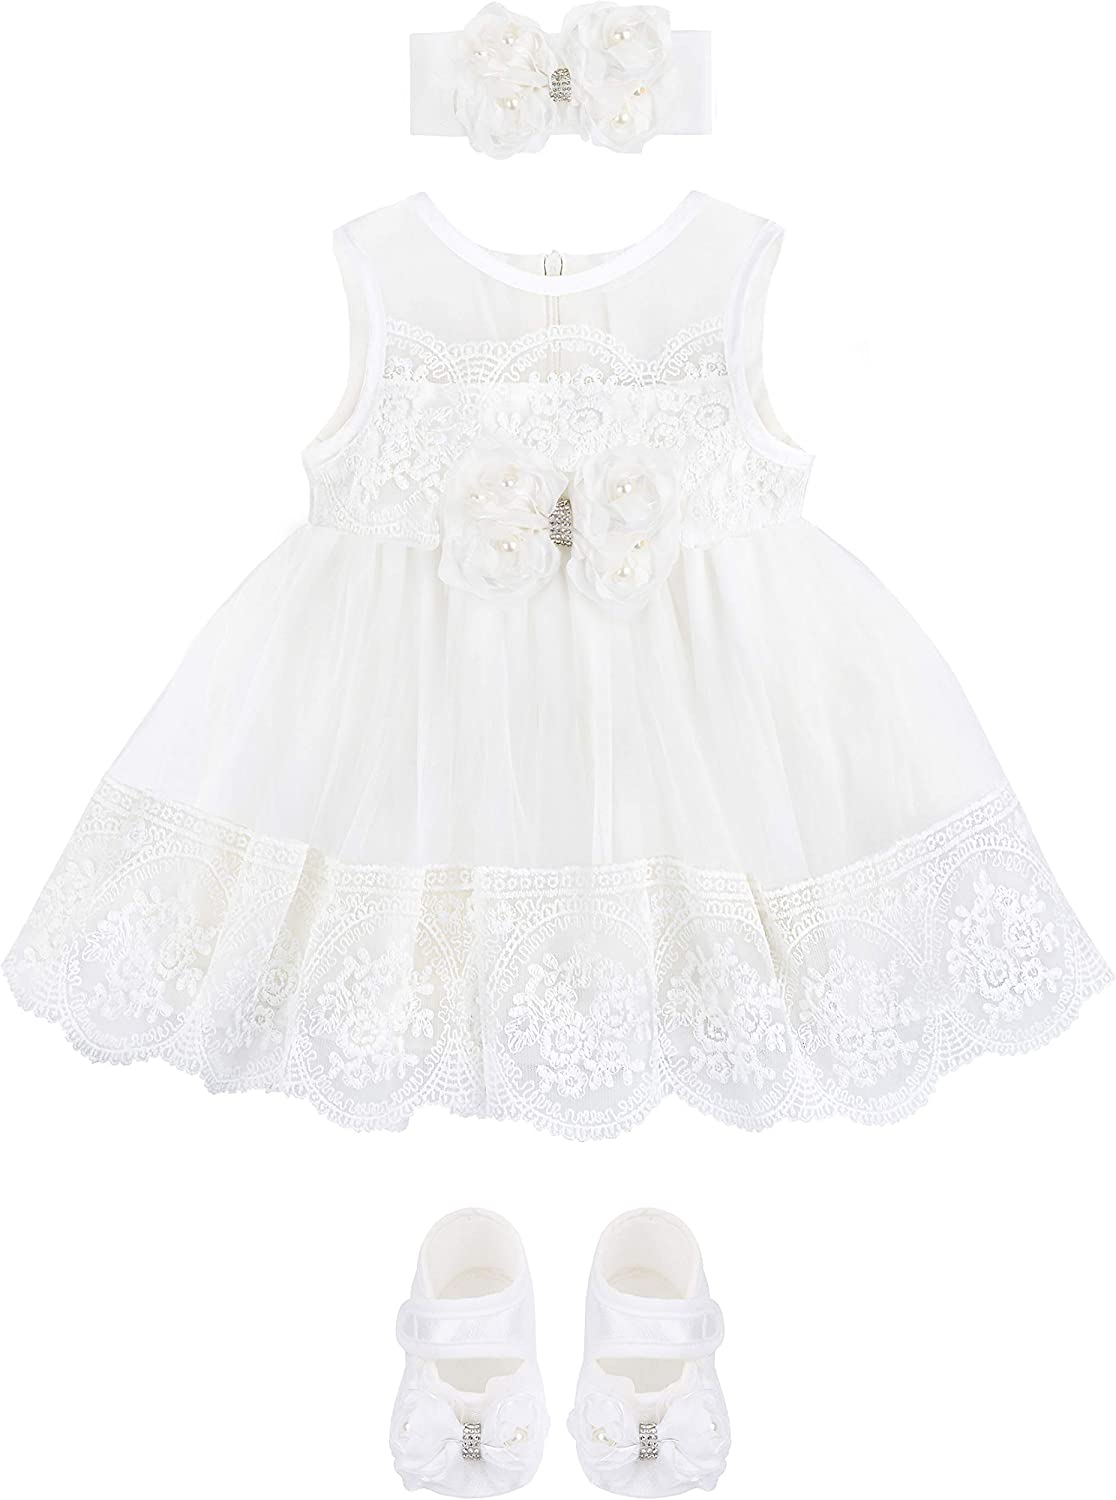 Taffy Baby Girl Christening Baptism Embroidered Dress Gown 6 Piece Deluxe Set 0-3 Months, White